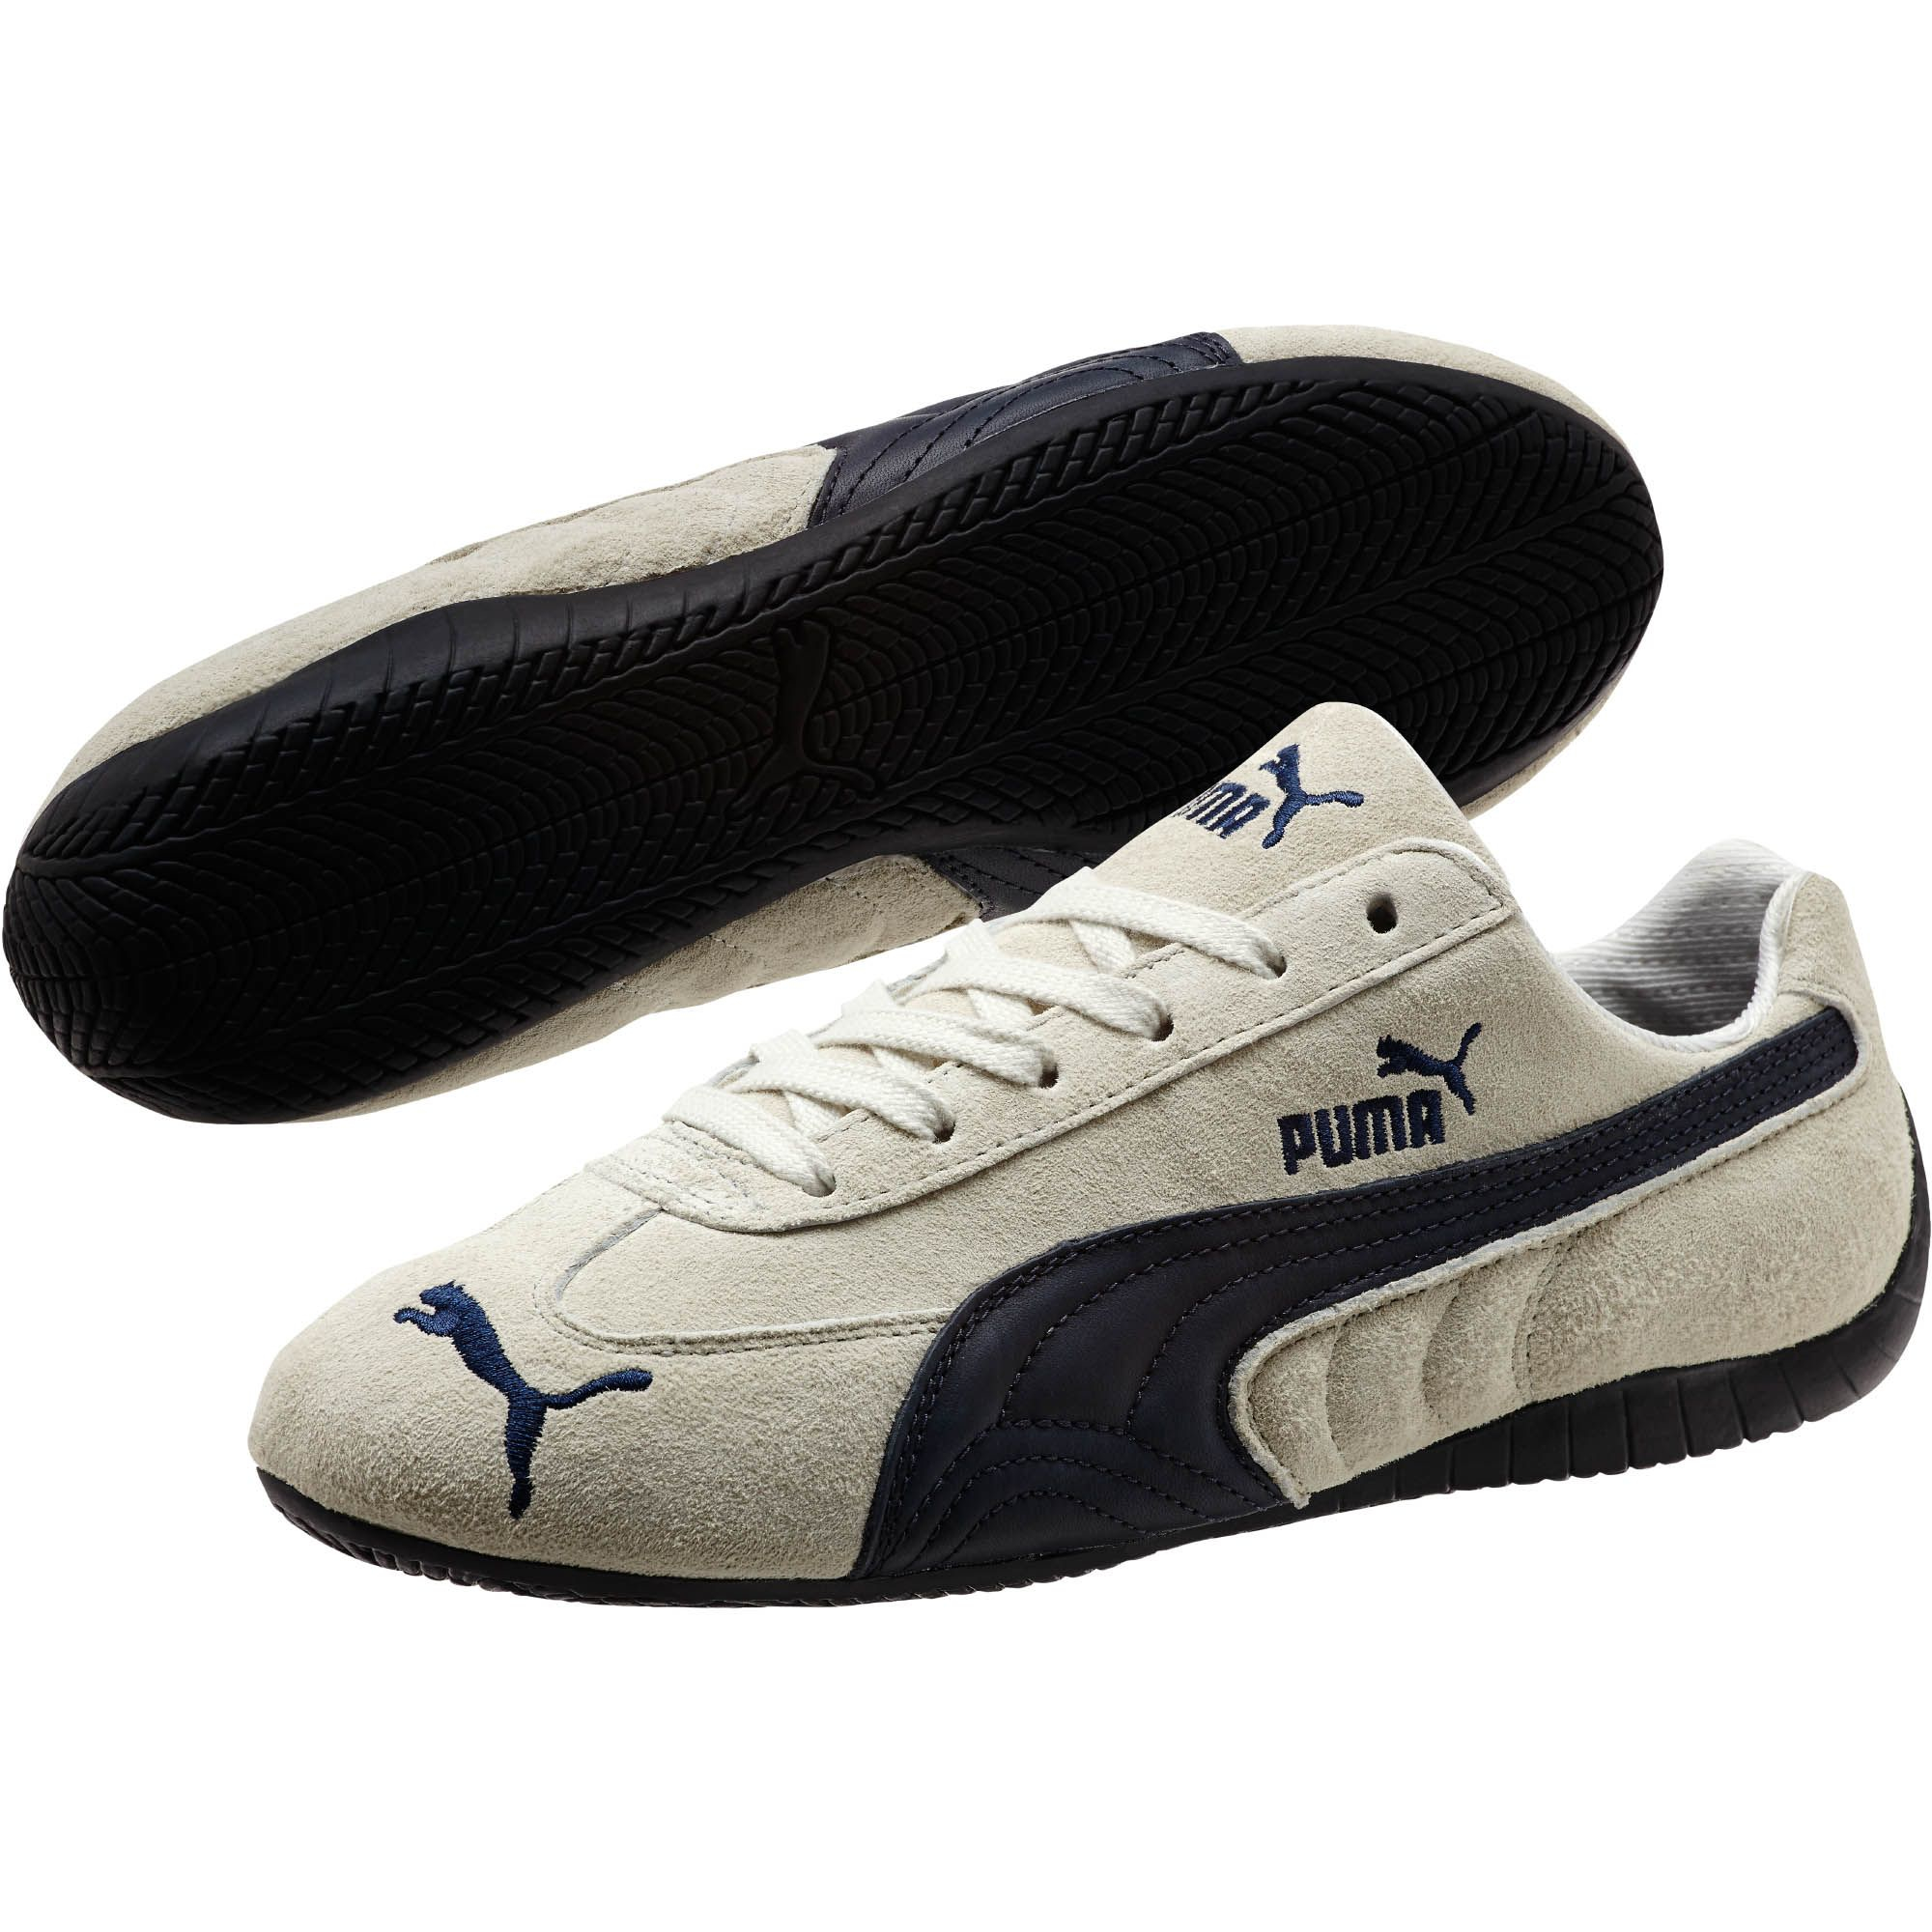 ... coupon code for puma speed cat navy blue suit b7c0a 42ba1 f047bbc9f6